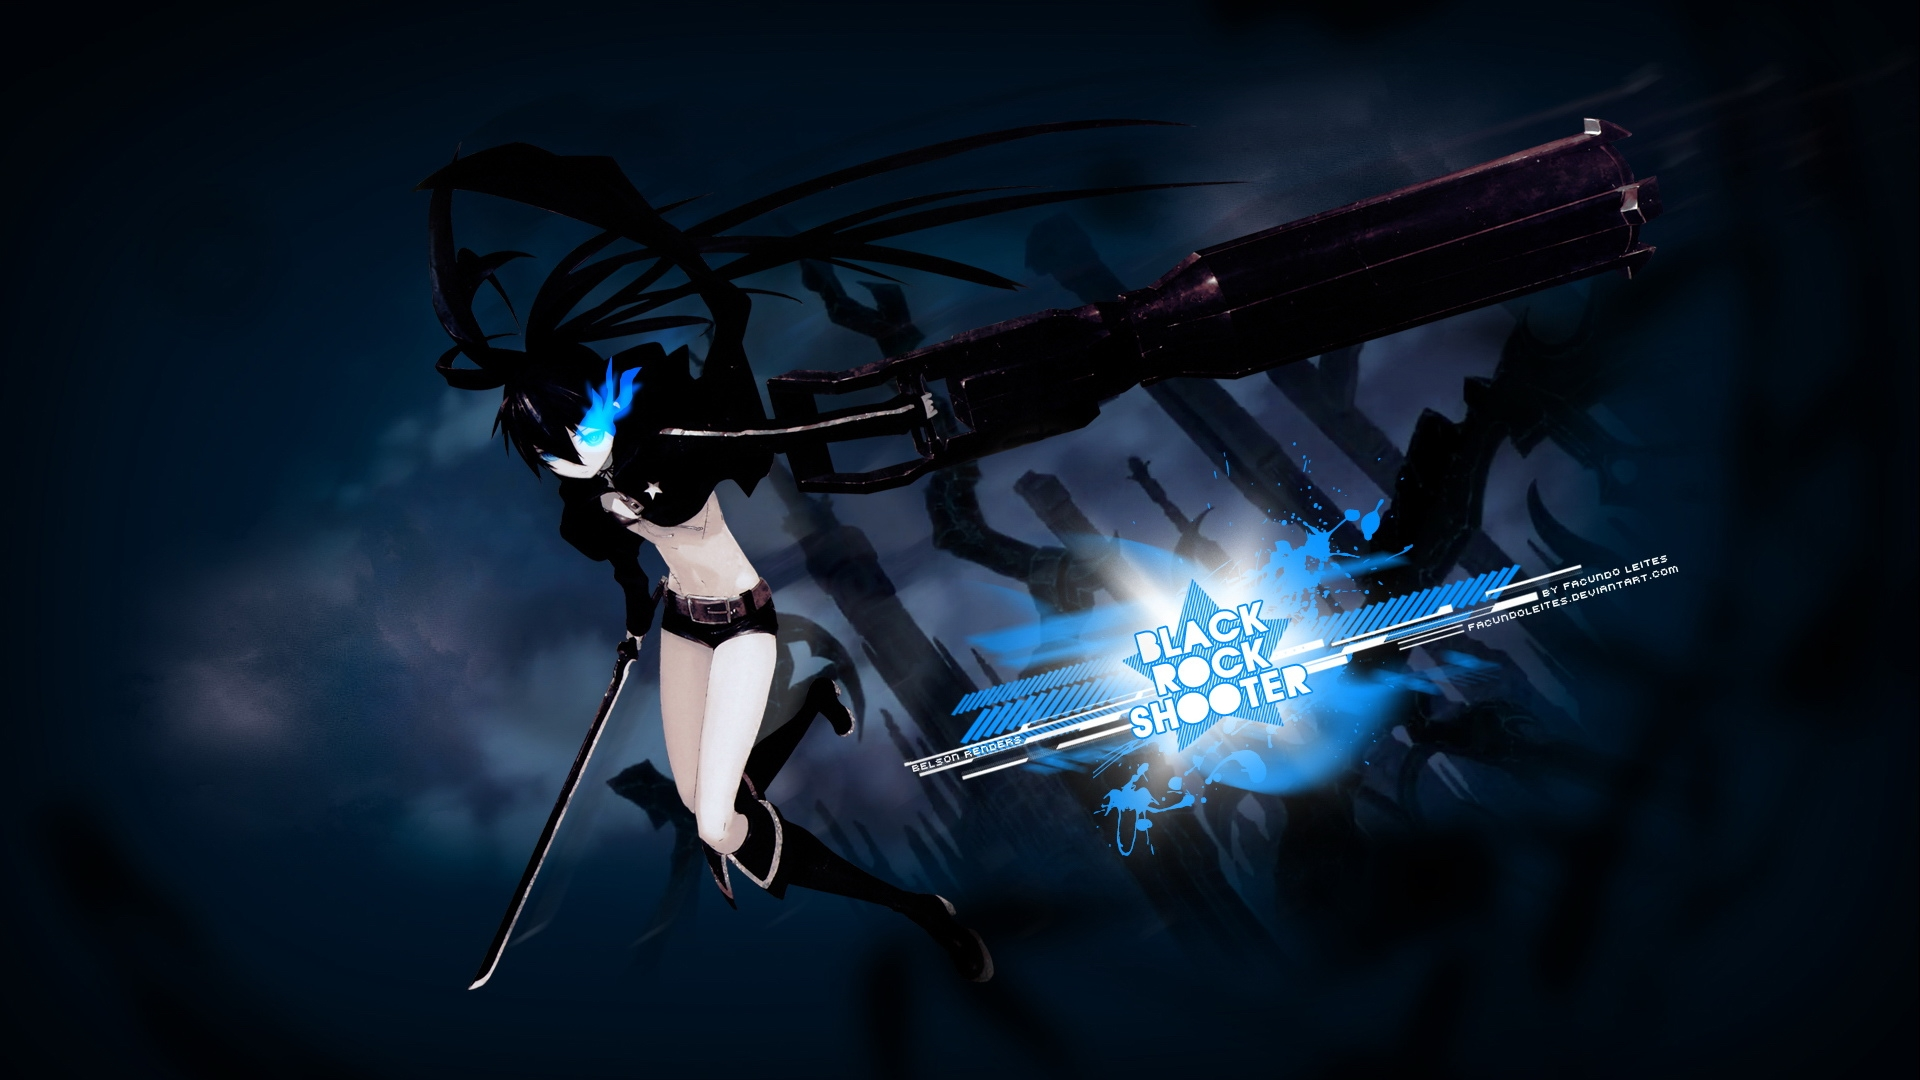 Black Rock Shooter - High Definition Wallpapers - HD wallpapers